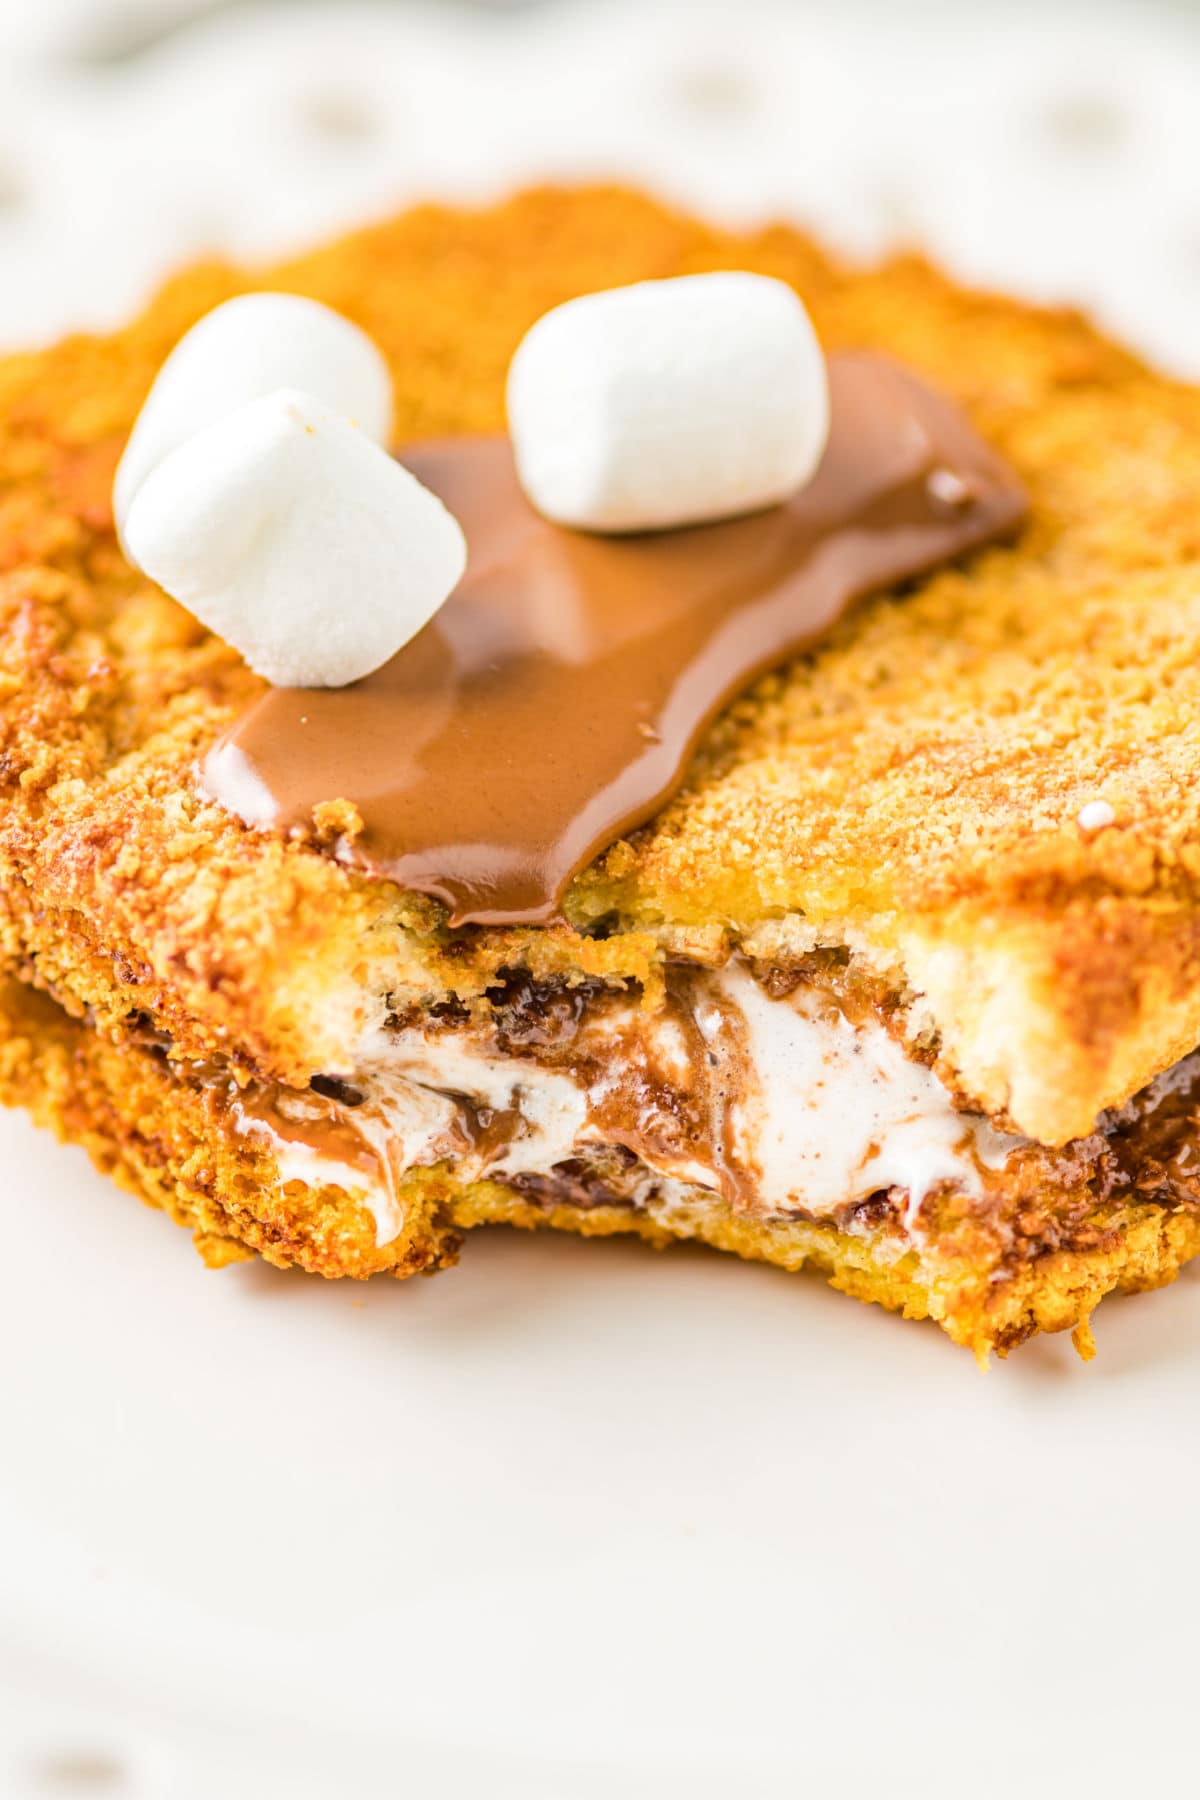 A close up of the air fryer stuffed French toast showing the filling.